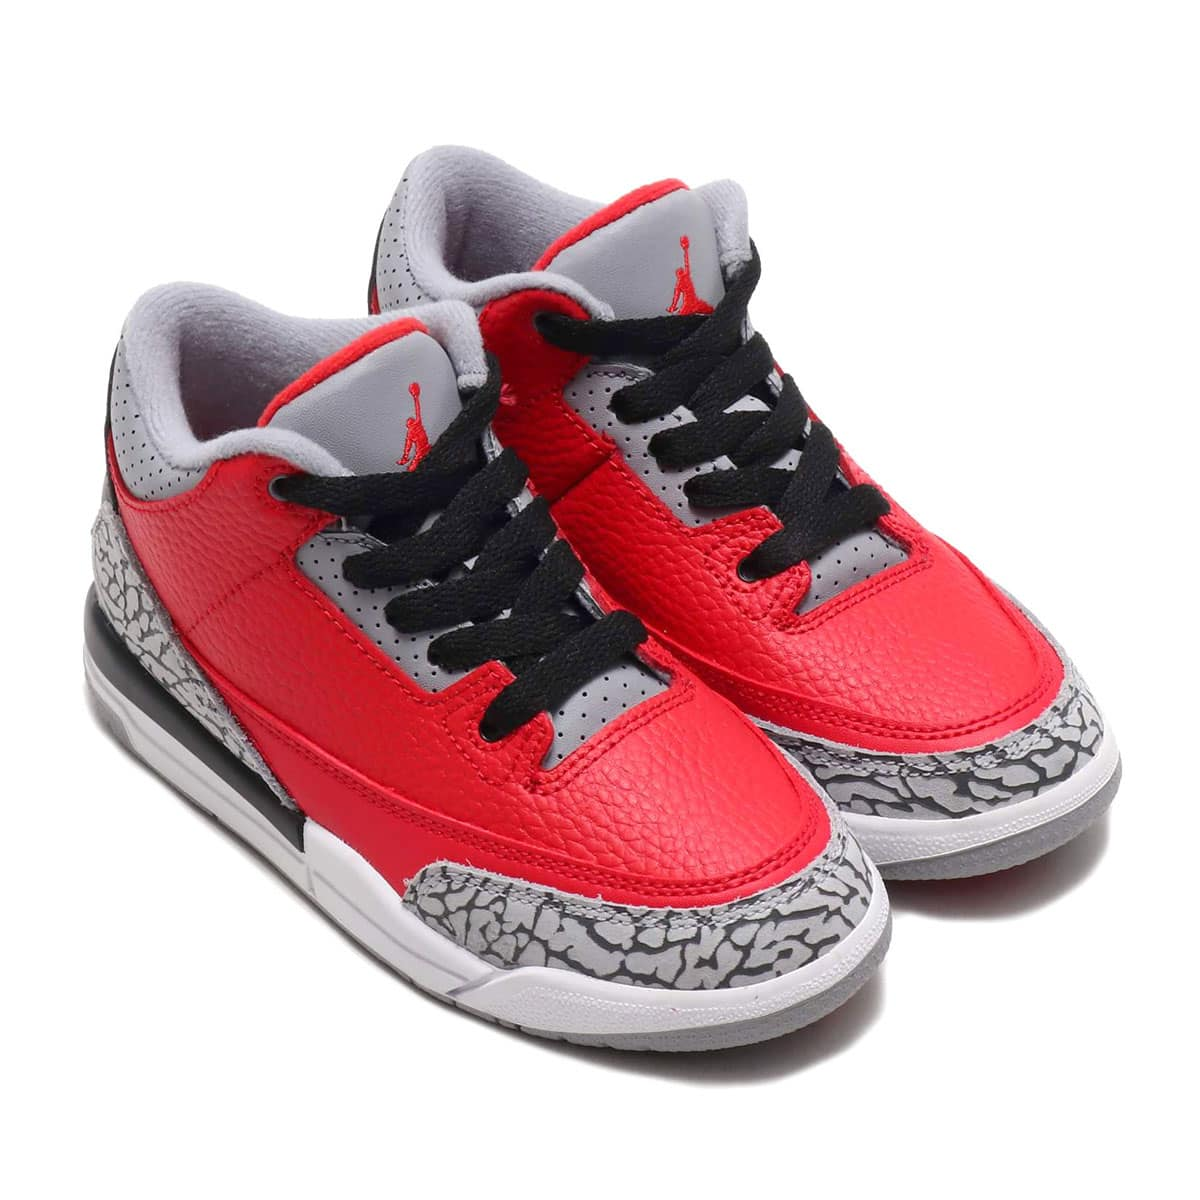 JORDAN BRAND JORDAN 3 RETRO SE PS FIRE RED/FIRE RED-CEMENT GREY-BLACK 20SP-S_photo_large